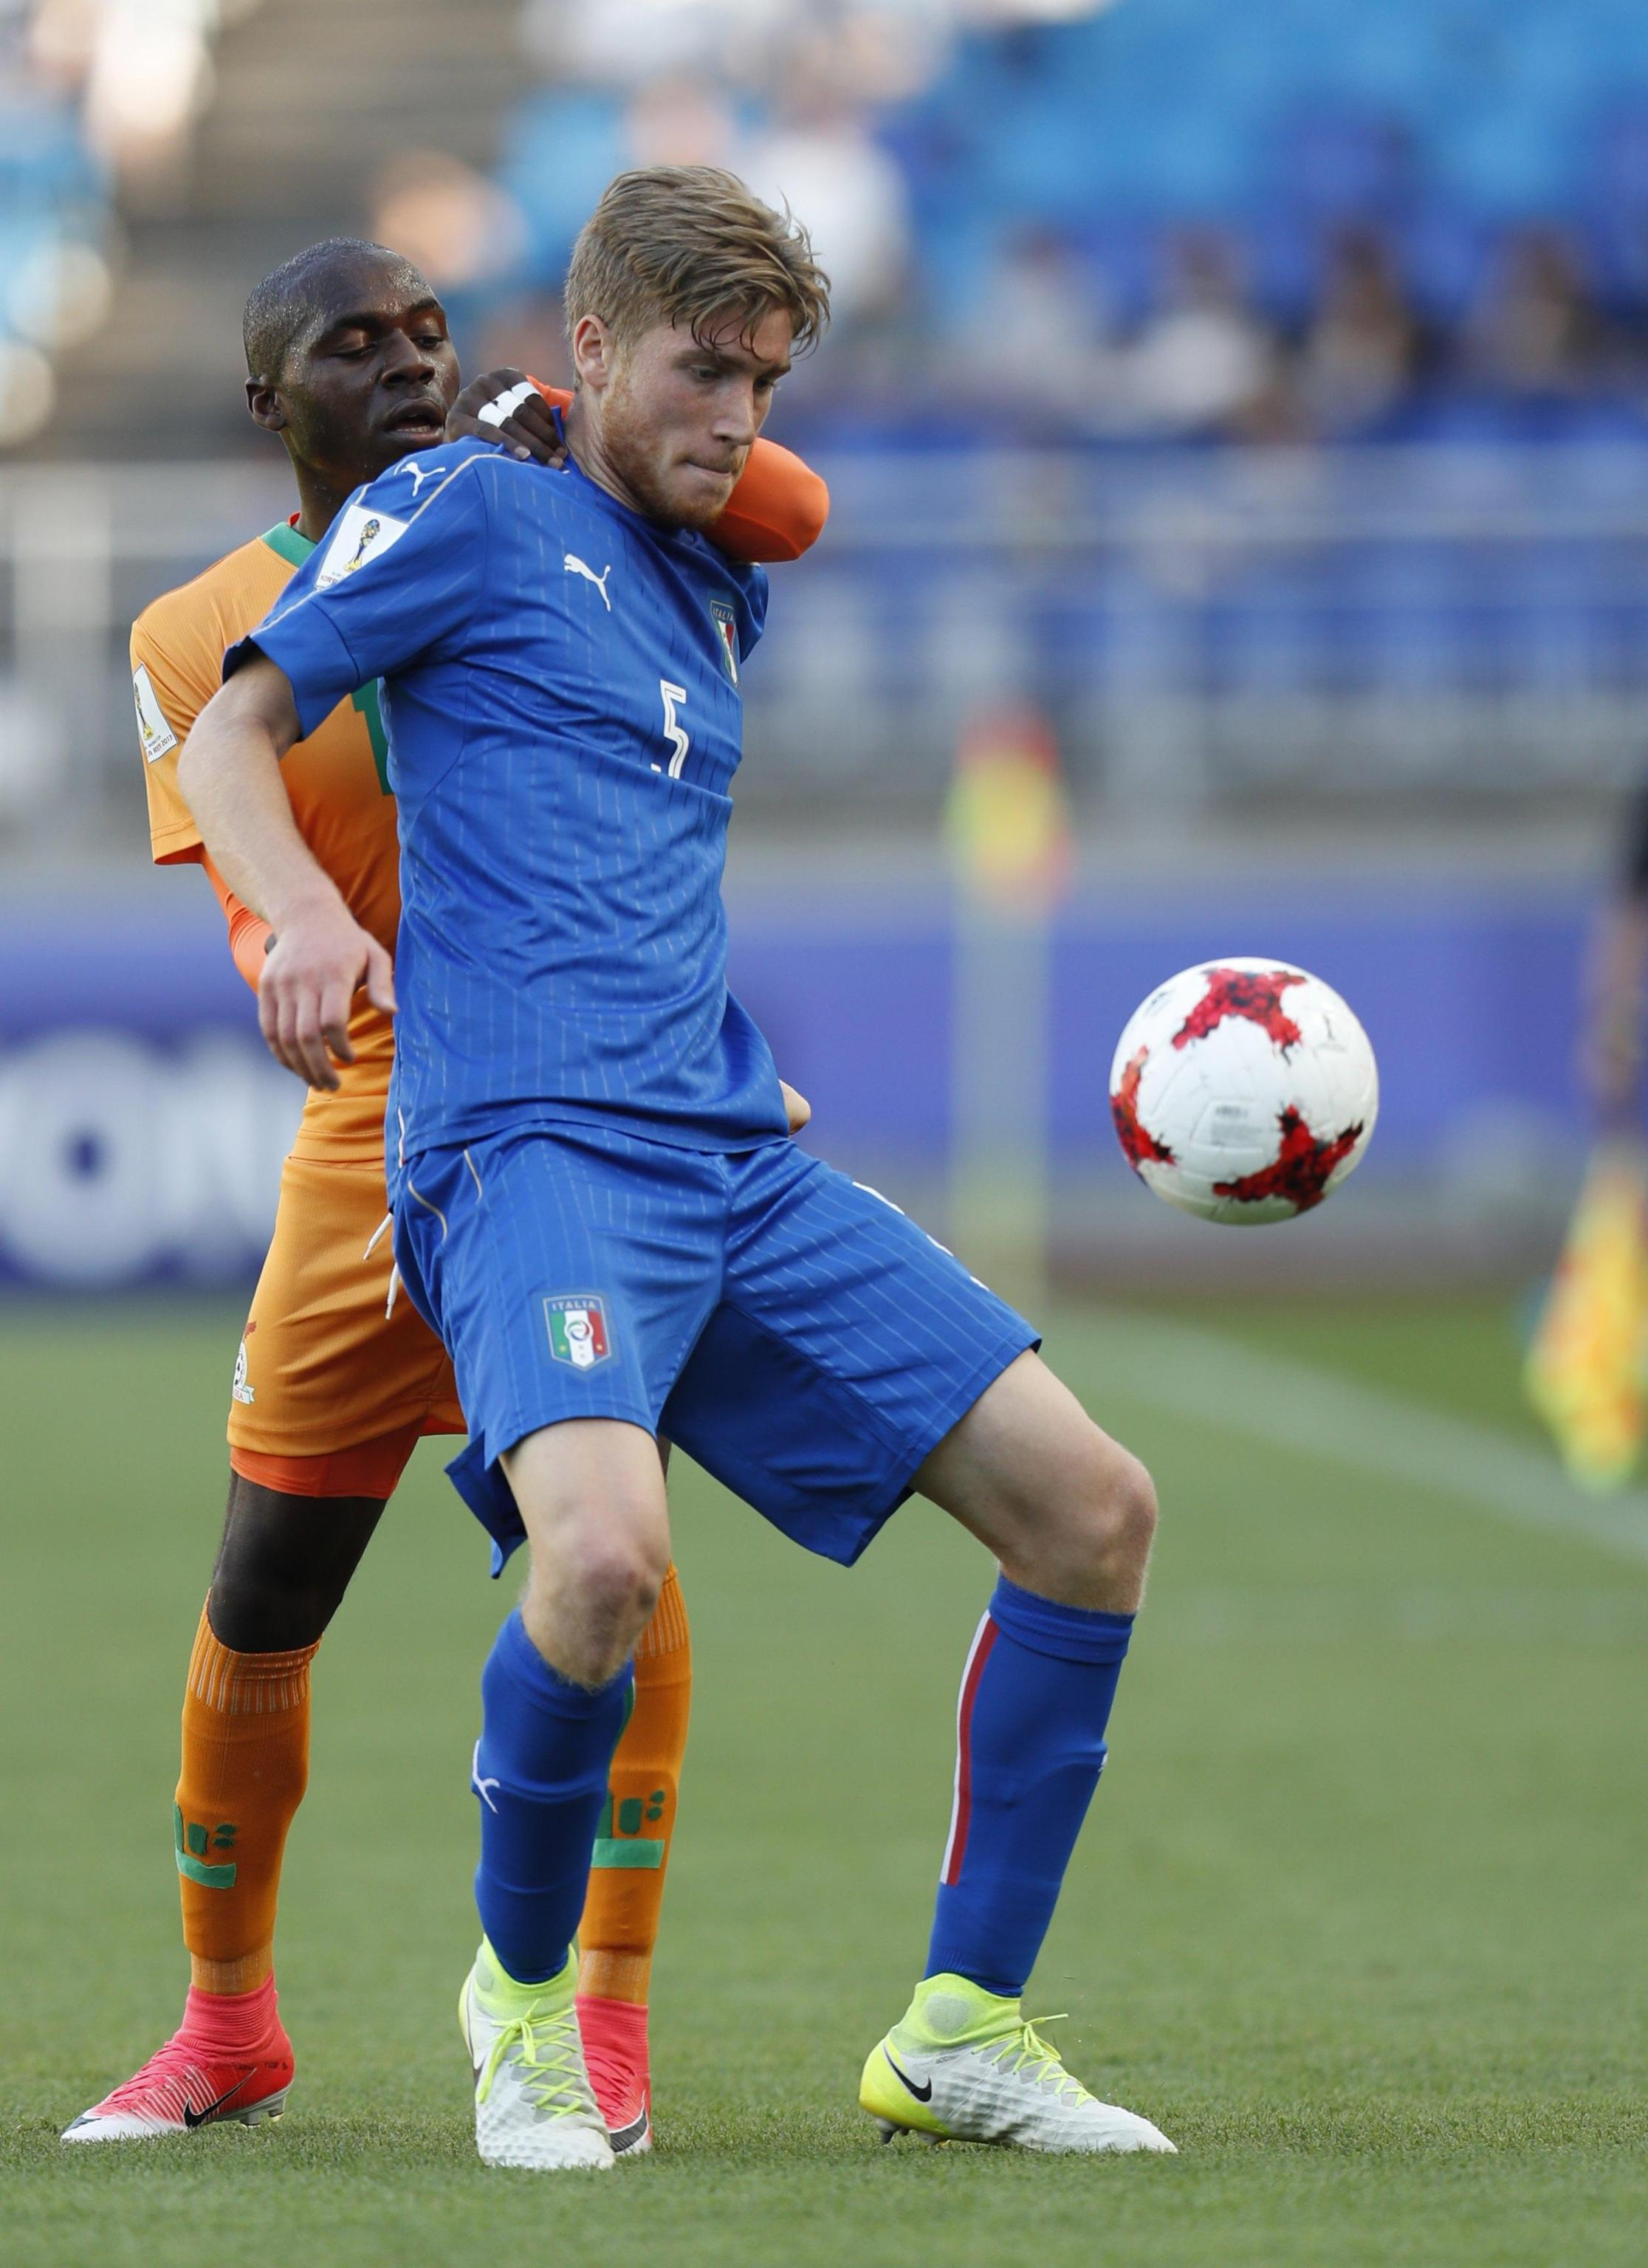 epa06011395 Filippo Romagna (front) of Italy vies for ball with Edward Chilufya (back) of Zambia during the quarterfinal match of the FIFA U-20 World Cup 2017 between Italy and Zambia in Suwon World Cup Stadium, South Korea, 05 June 2017. EPA/JEON HEON-KYUN